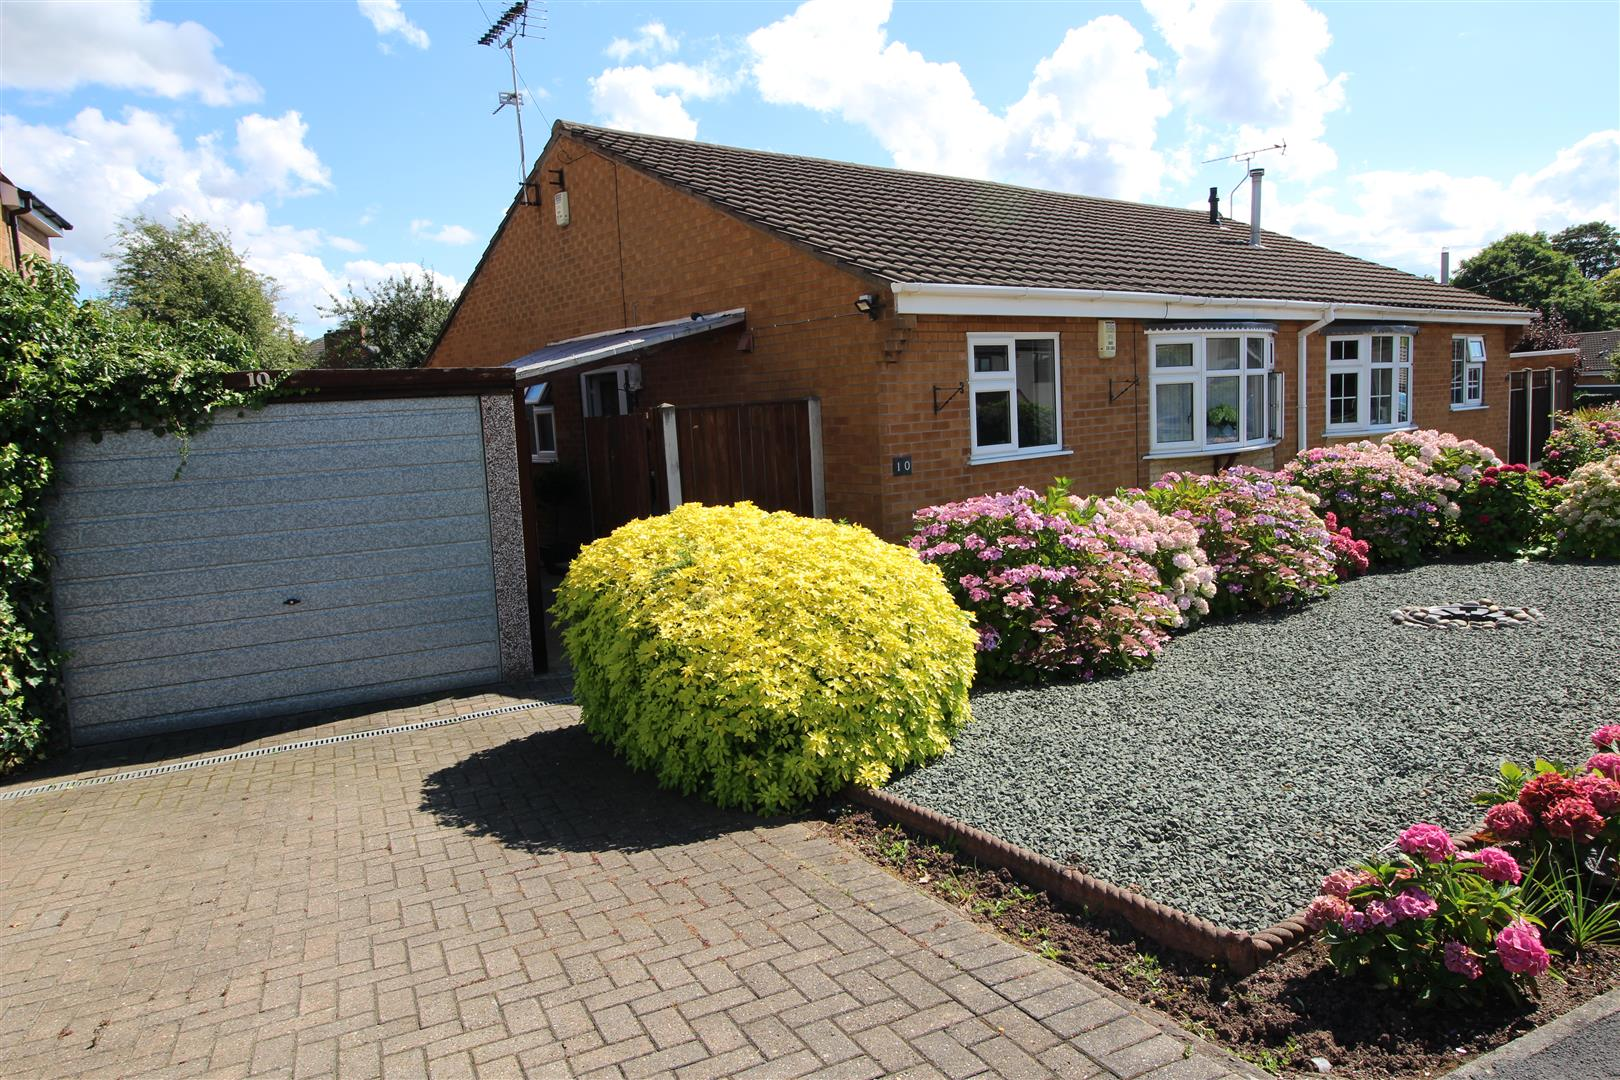 2 Bedrooms House for sale in The Paddocks, Sandiacre